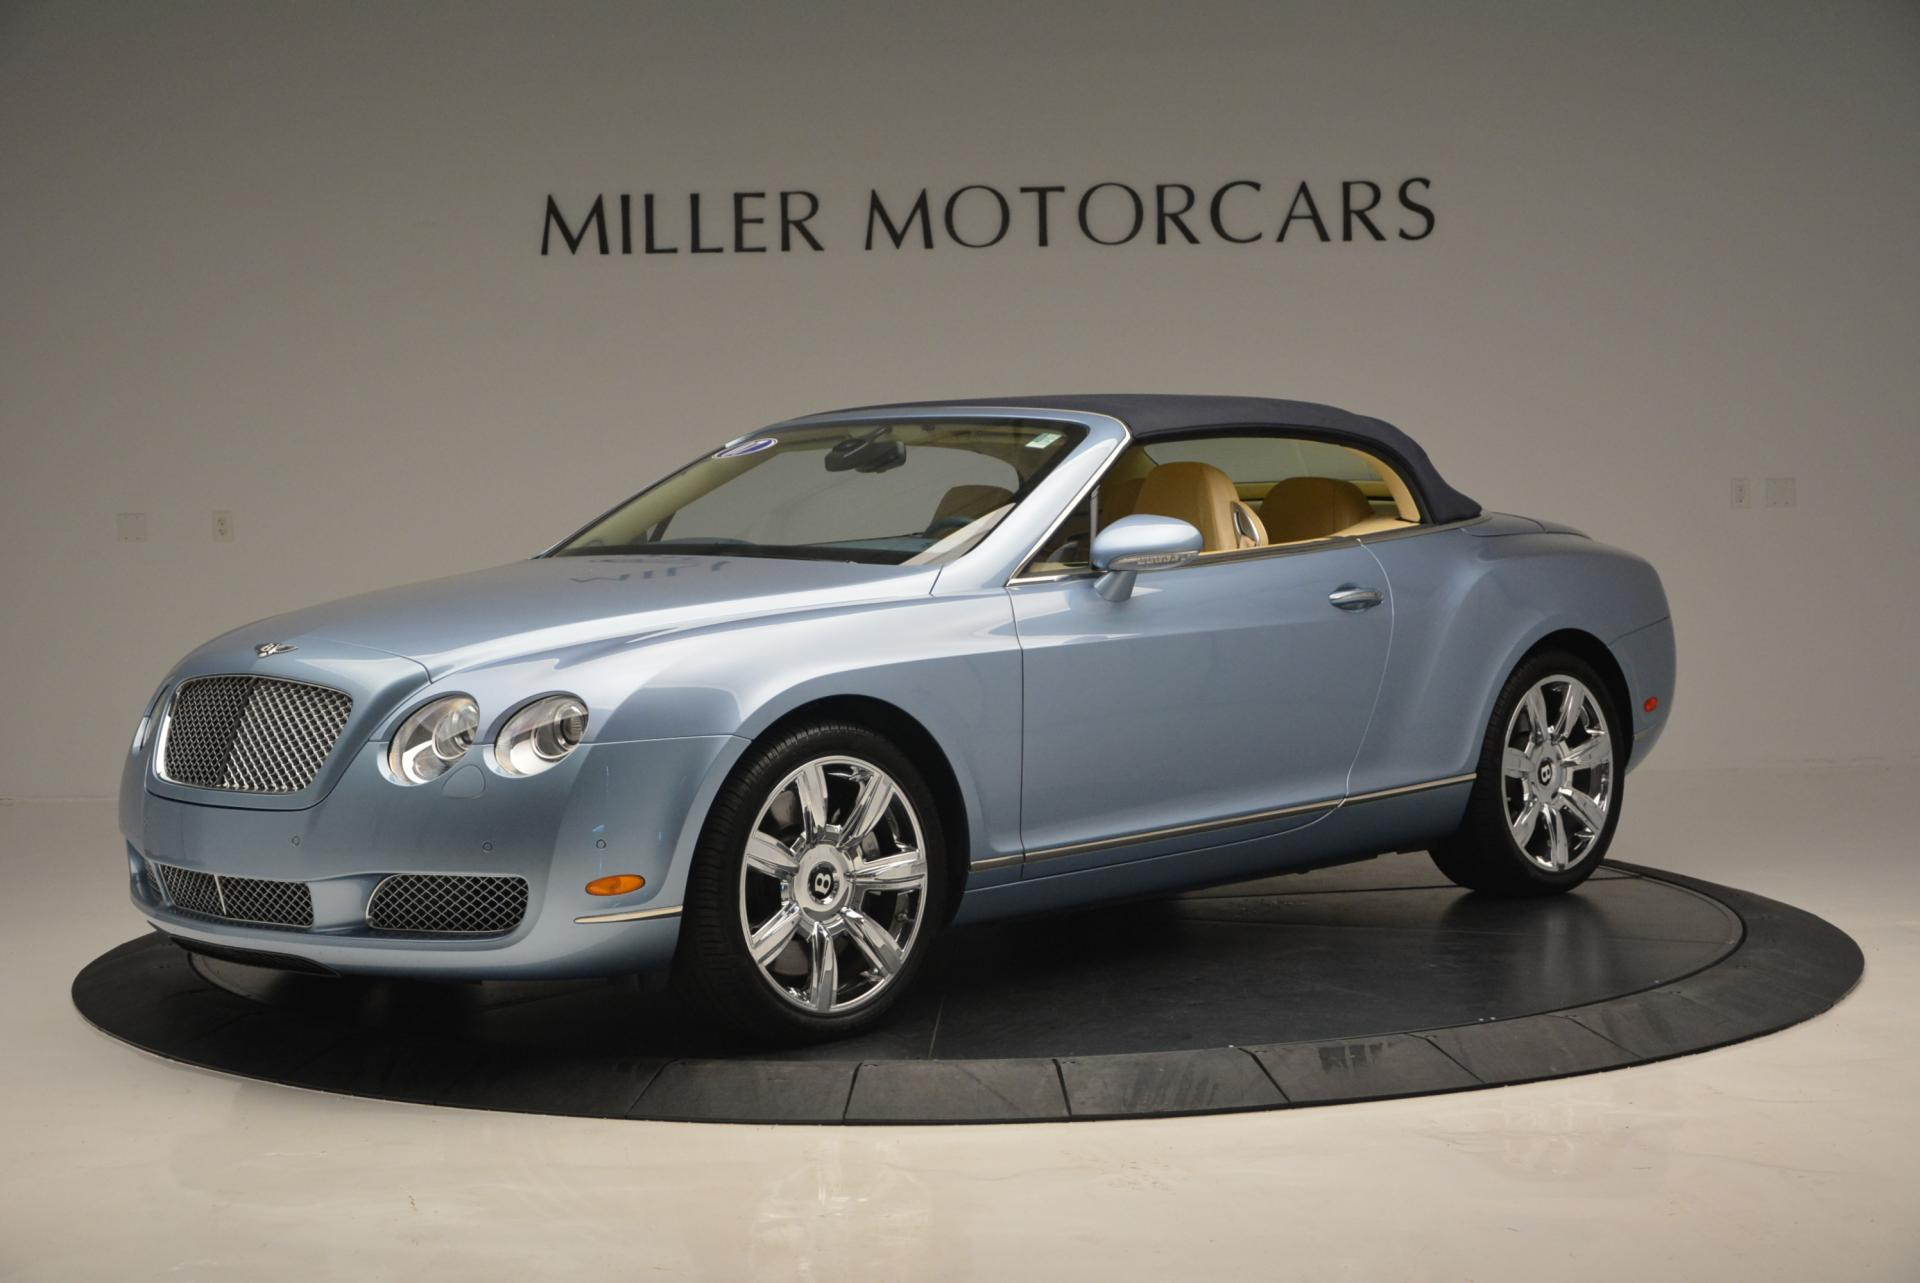 Used 2007 Bentley Continental GTC  For Sale In Westport, CT 495_p14